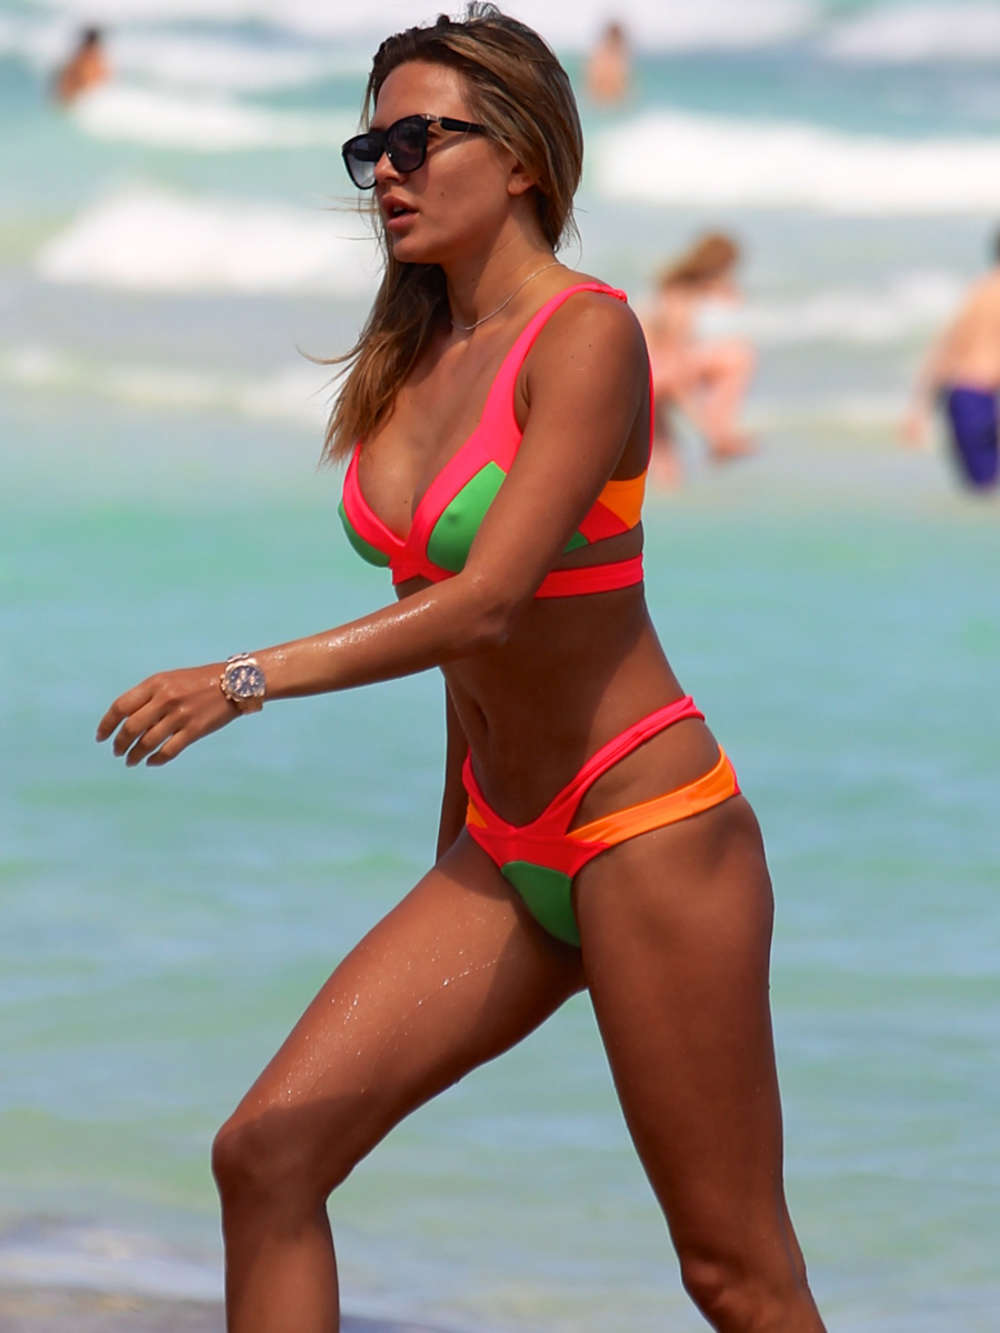 Tetyana Veryovkina Wearing Bikini on the Beach in Miami